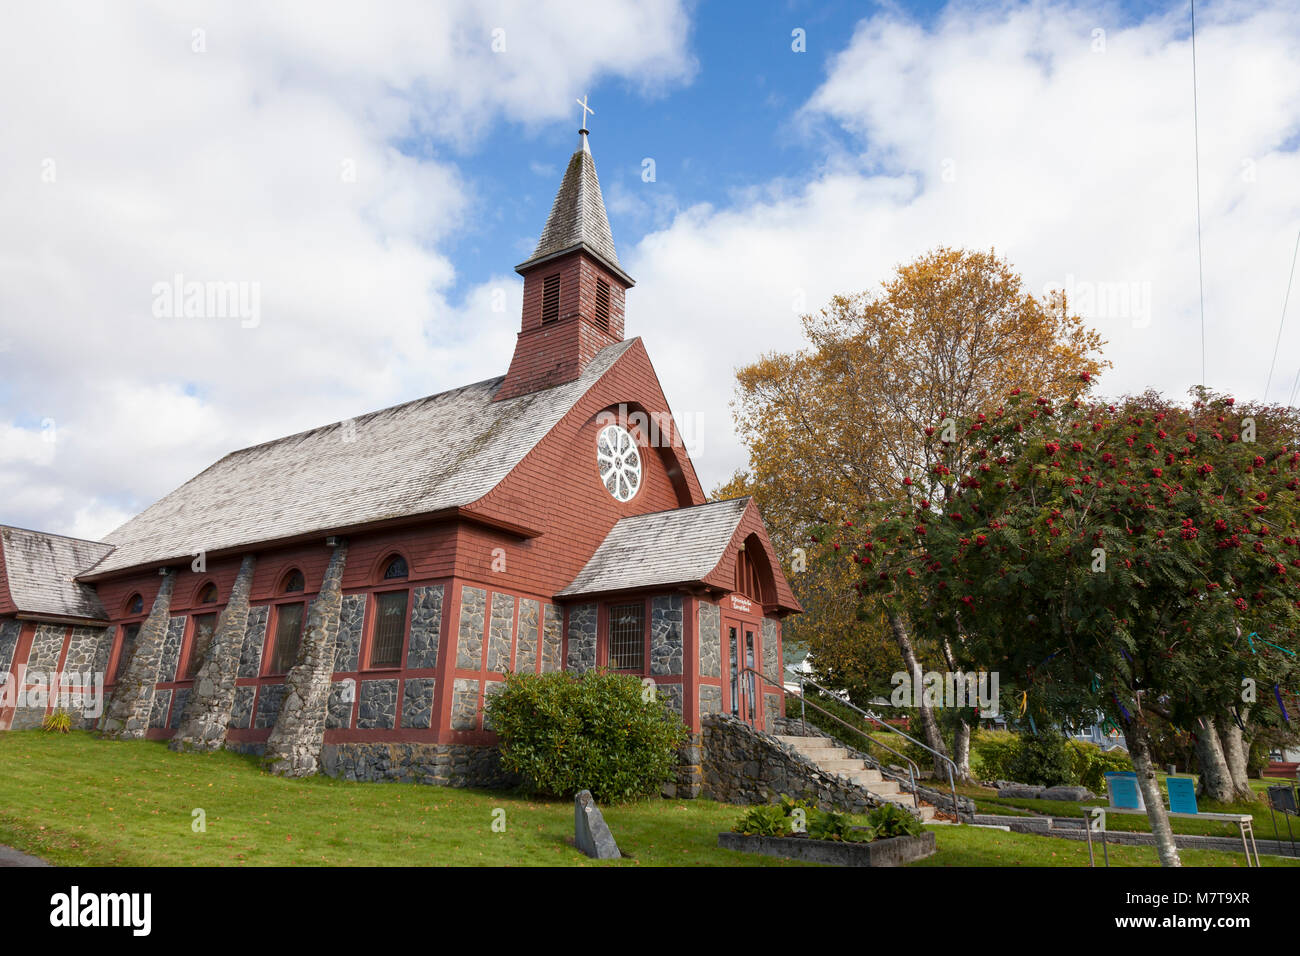 Sitka, Alaska: St. Peter's by-the-Sea Episcopal Church, Gothic Revival - Stock Image